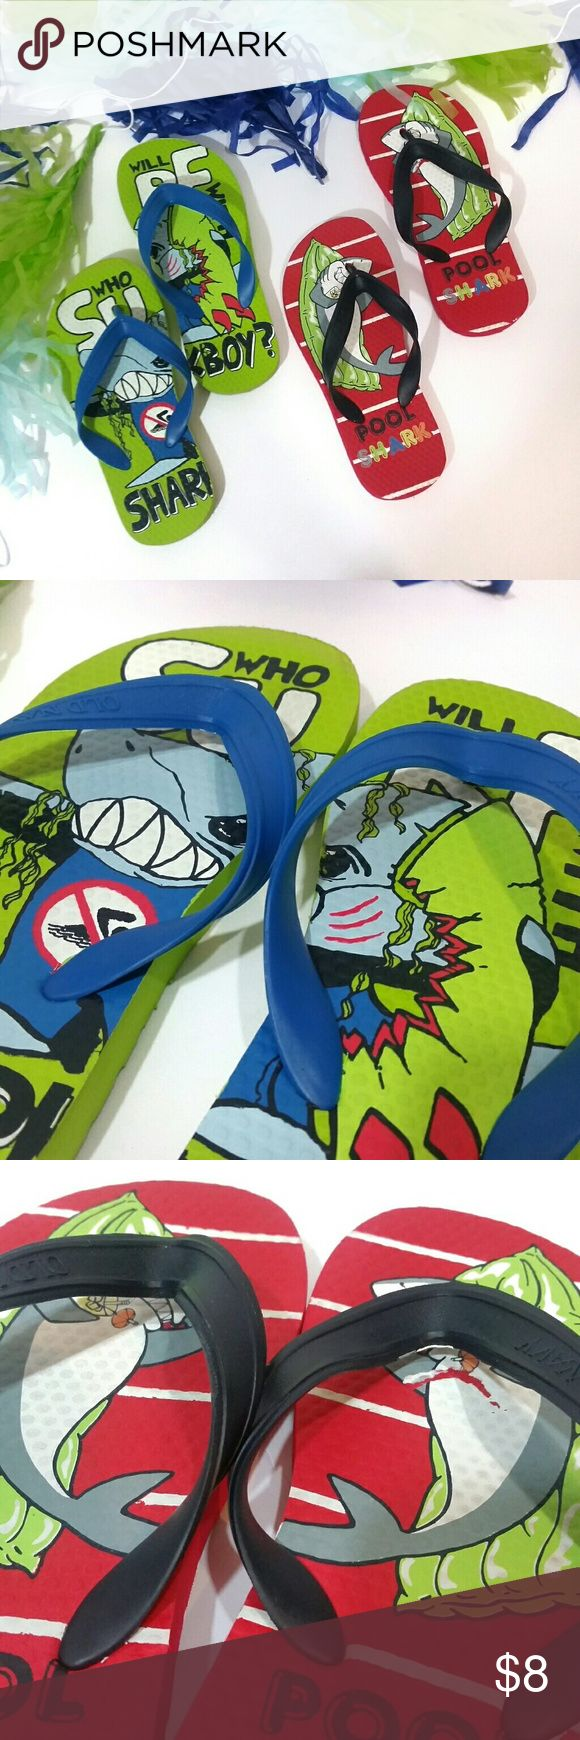 2 pair of boys Old Navy flip flops This listing is for 2 pair of Old Navy flip flops size 12-13. Please note: the graphic on the red flip flop is peeling a bit (see 3rd pic) Old Navy Shoes Sandals & Flip Flops